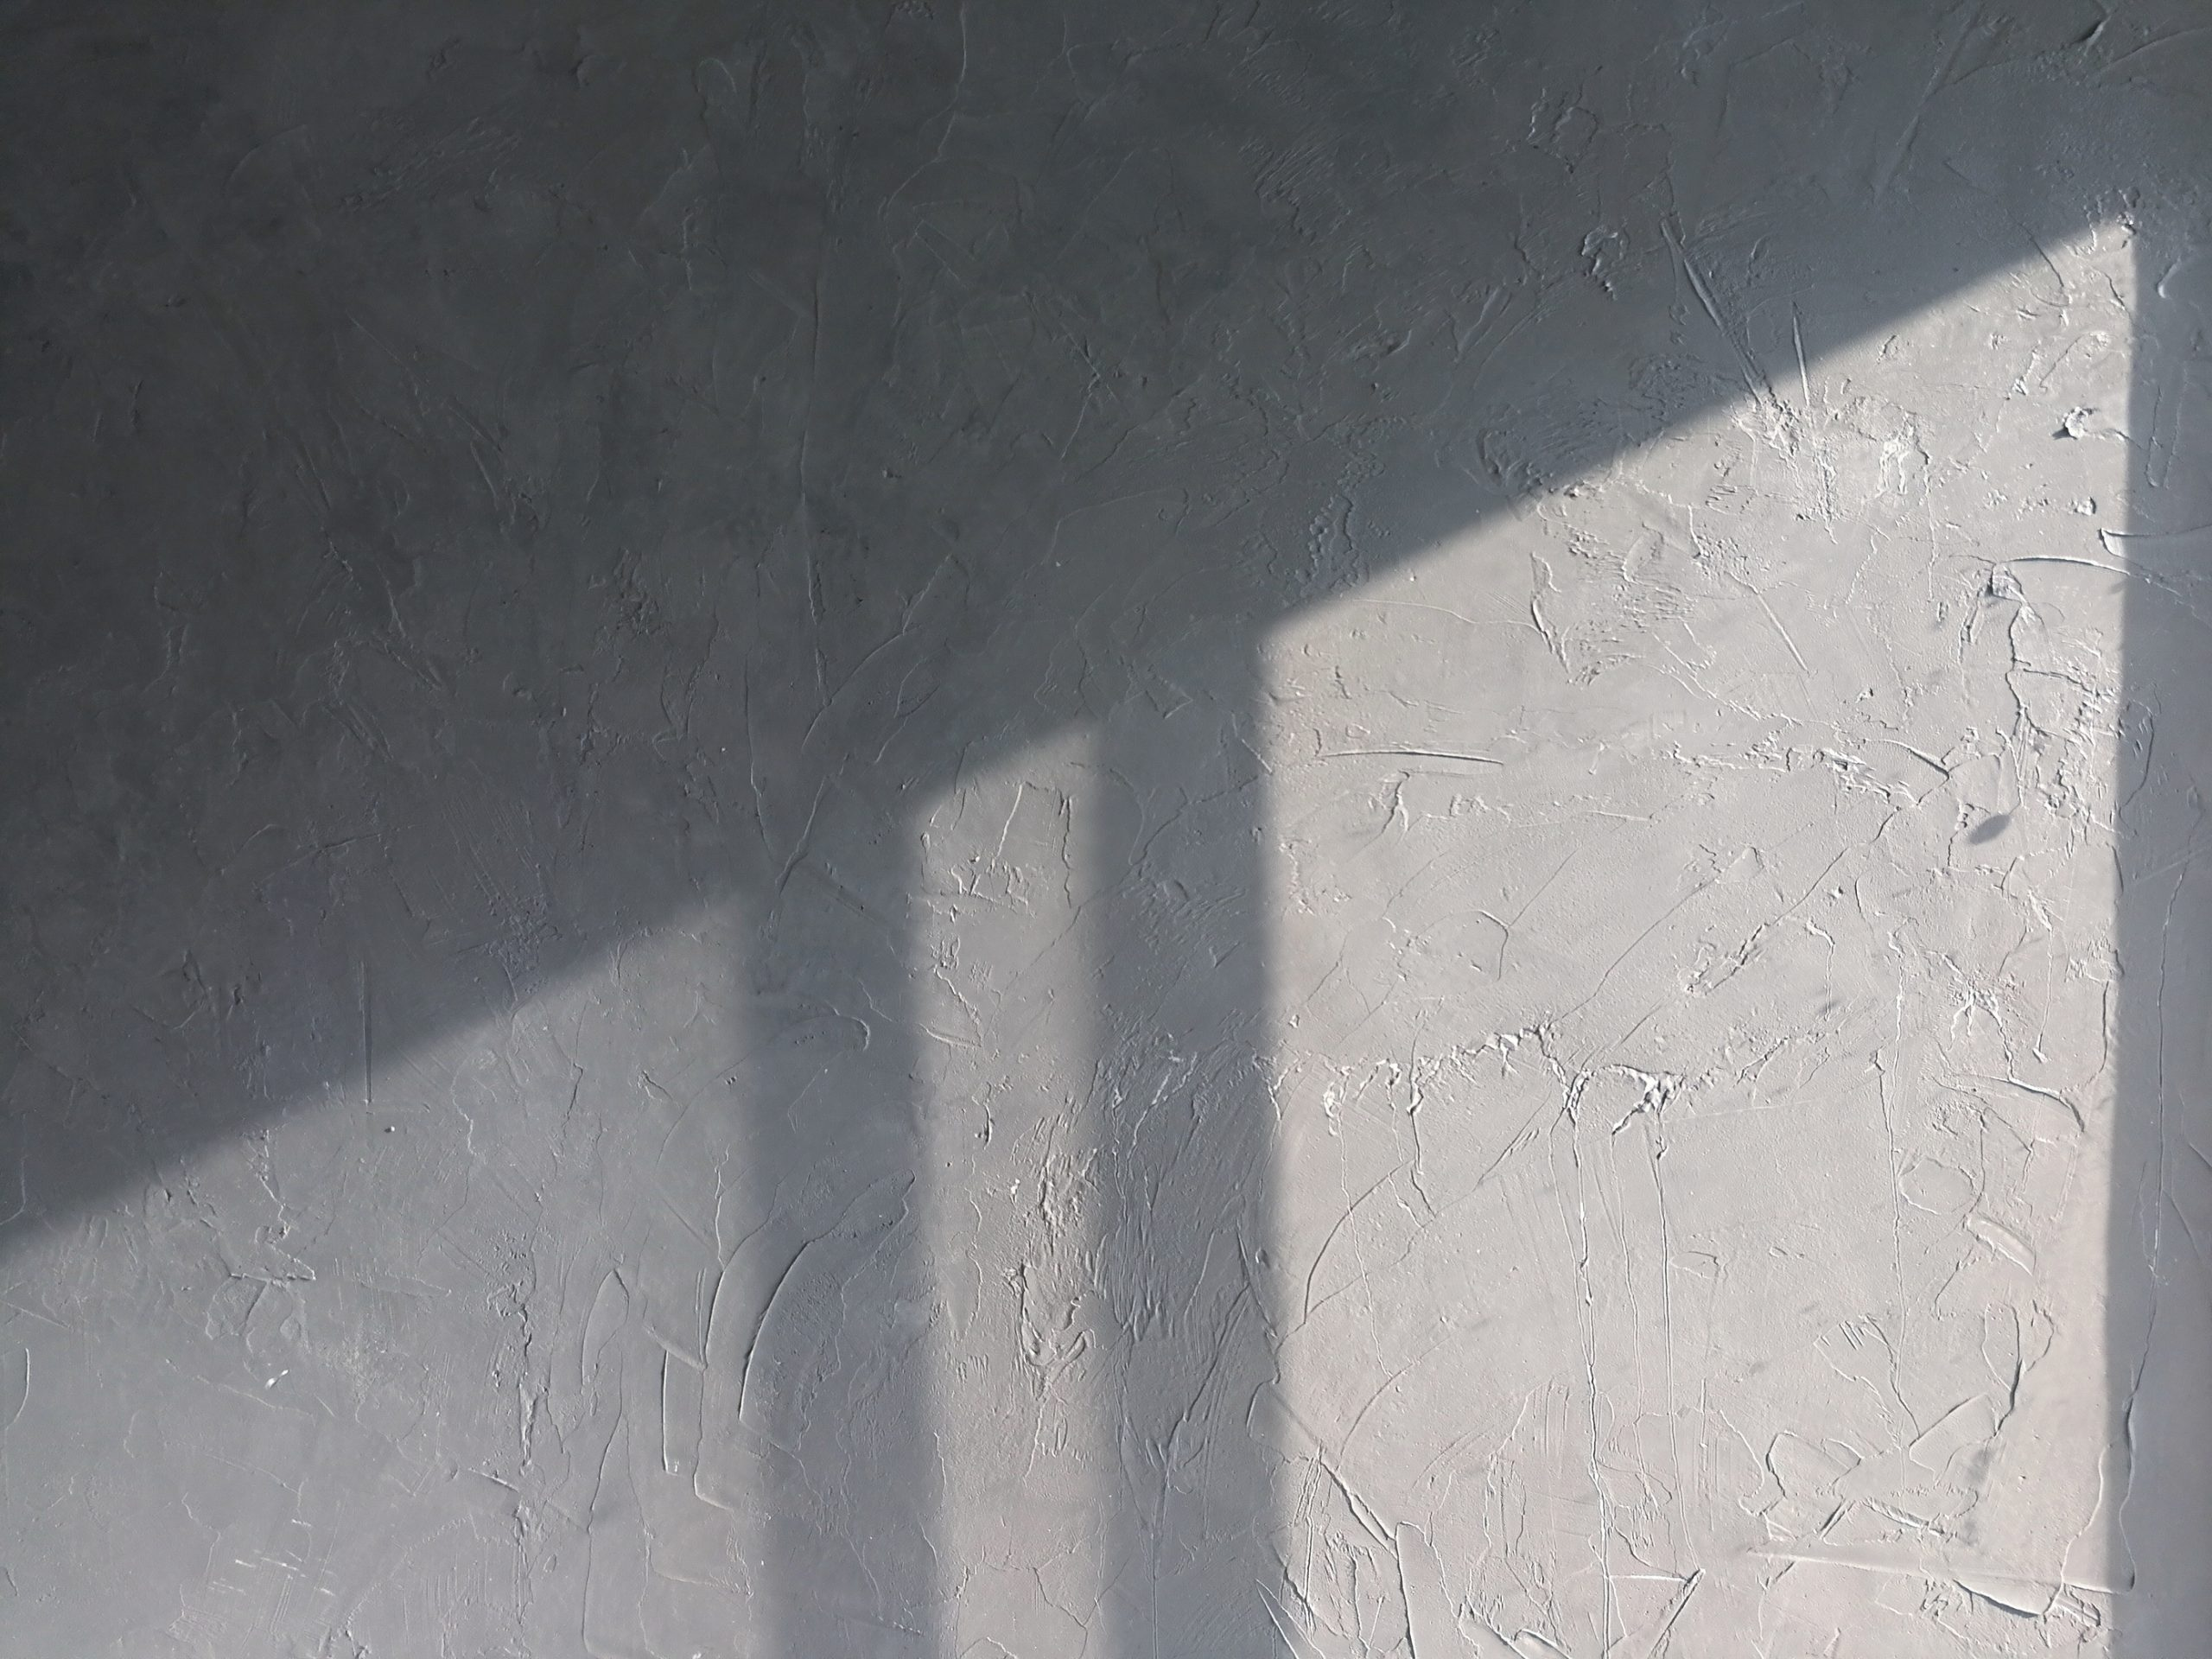 Light and shadow cast on cement wall